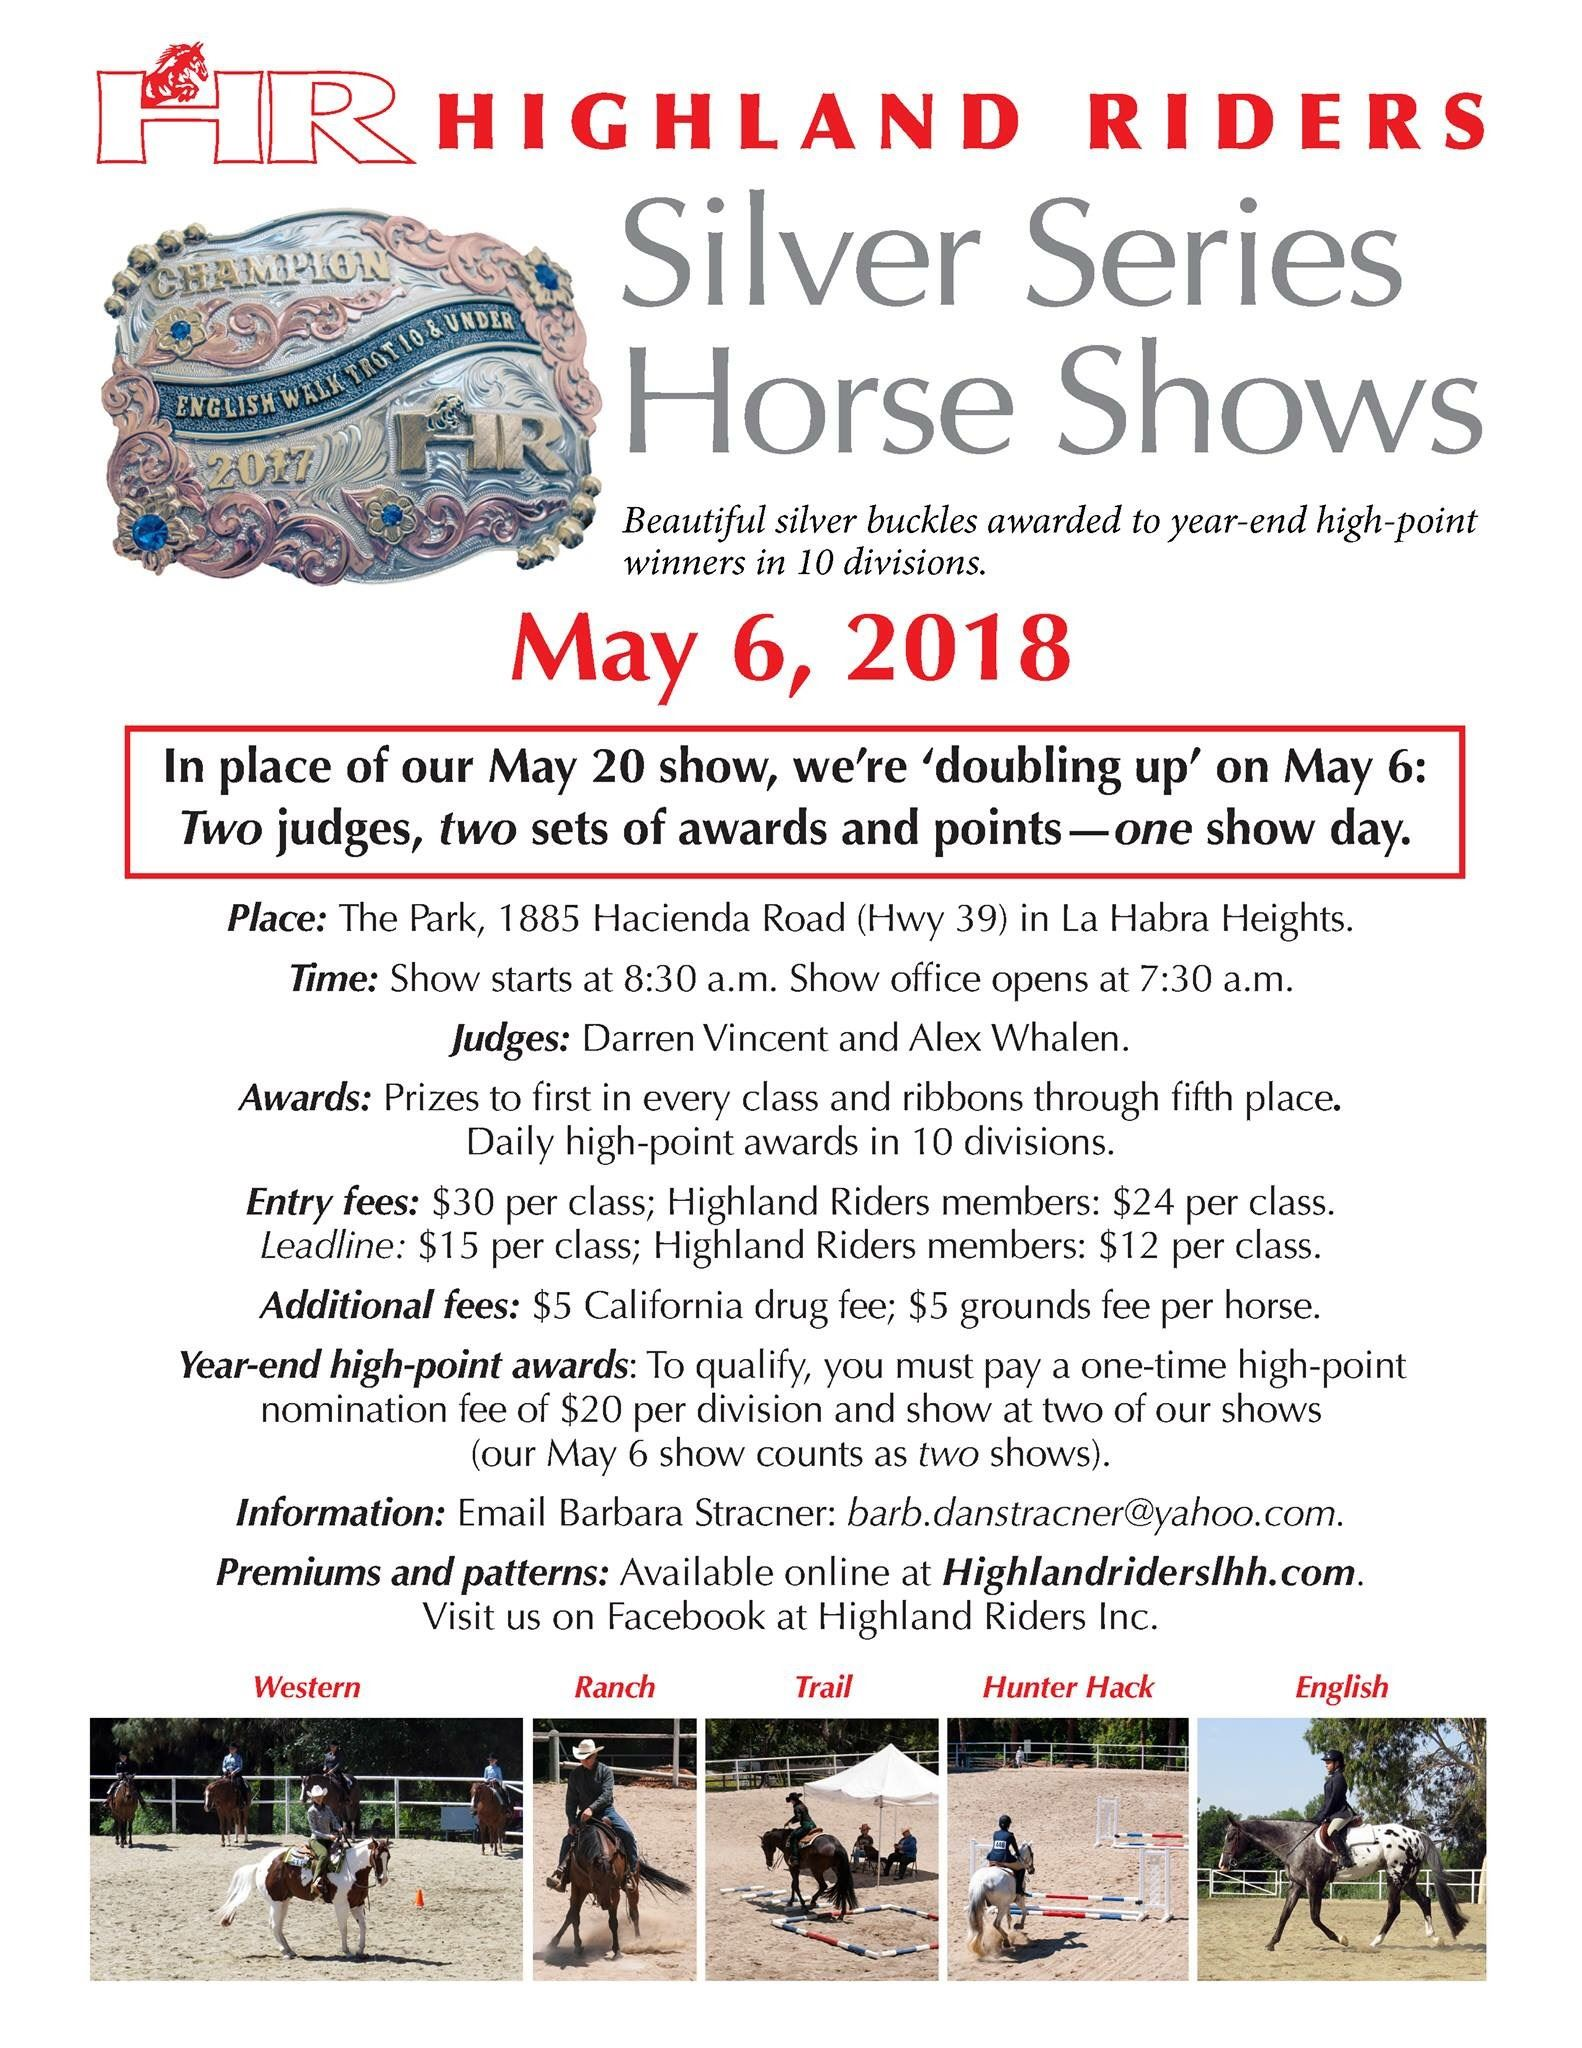 2018 05 06 Highland Riders Silver Series Horse Shows Flyer